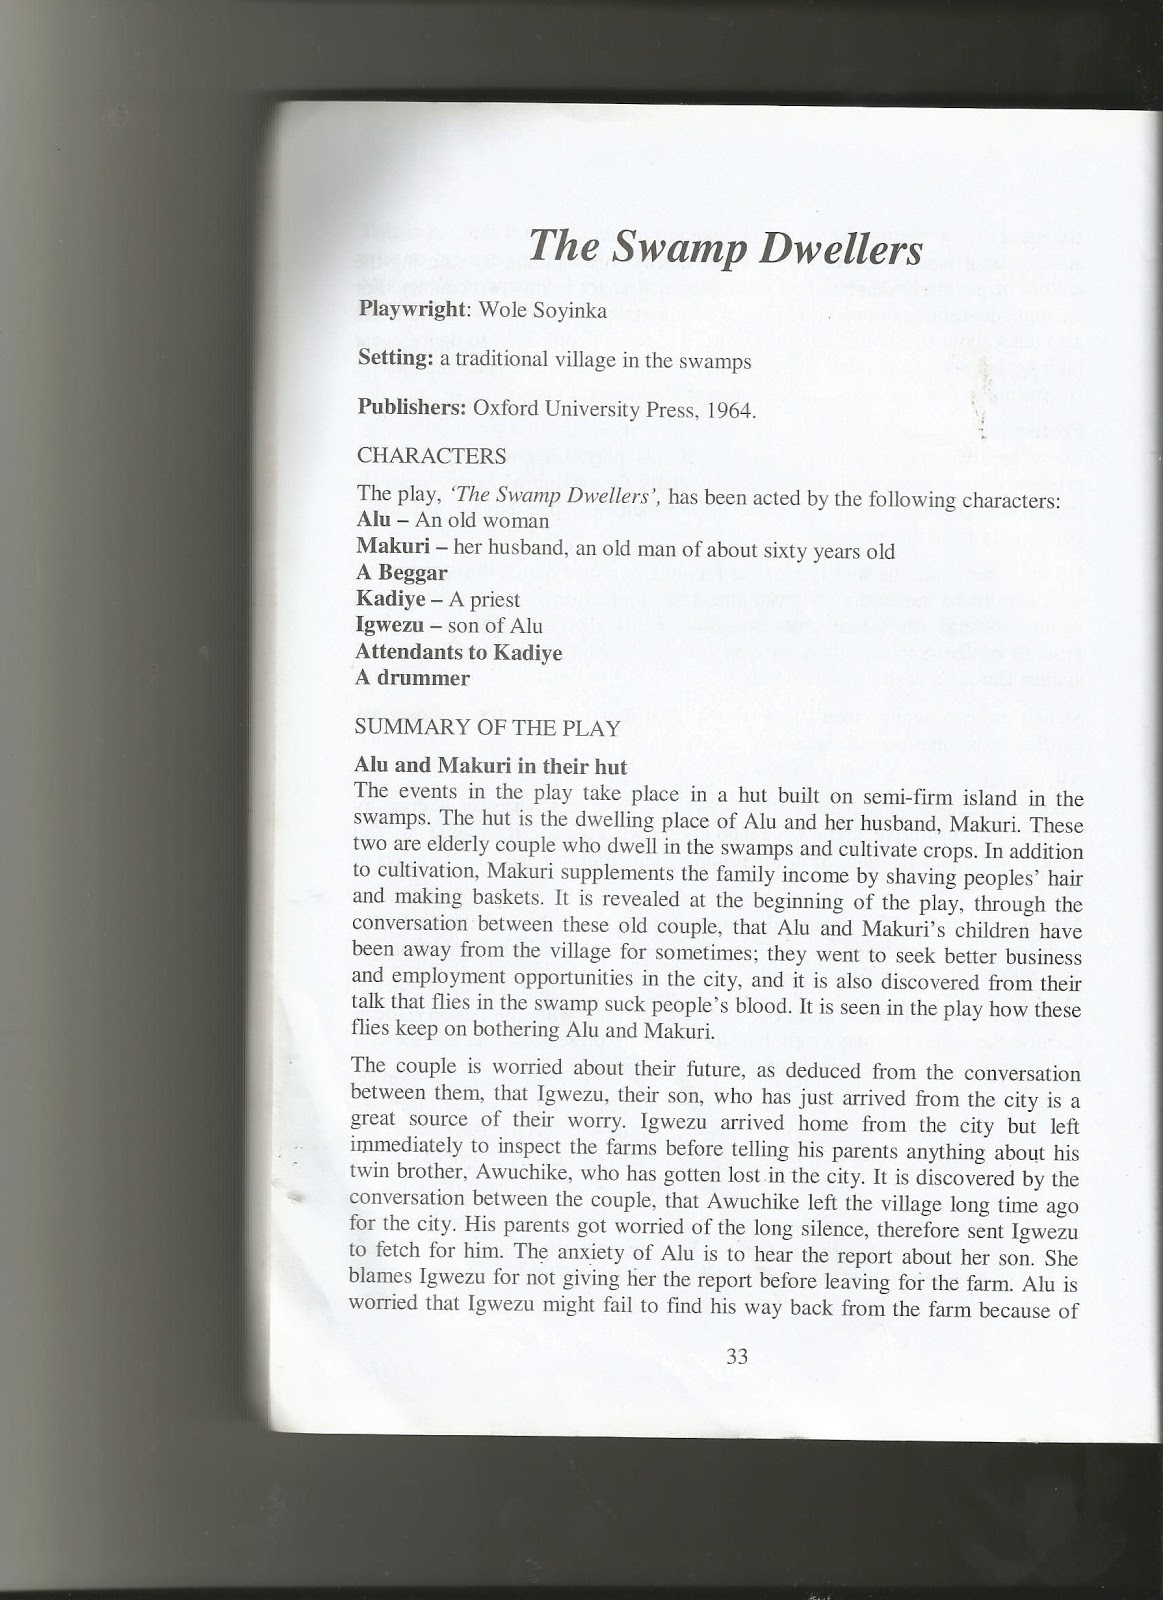 an examination of the play the swamp dwellers by wole soyinke Close examination of the playwright's themes and techniques as employed in two  of his plays: the swamp dwellers (1958) and the road (1965) the general.